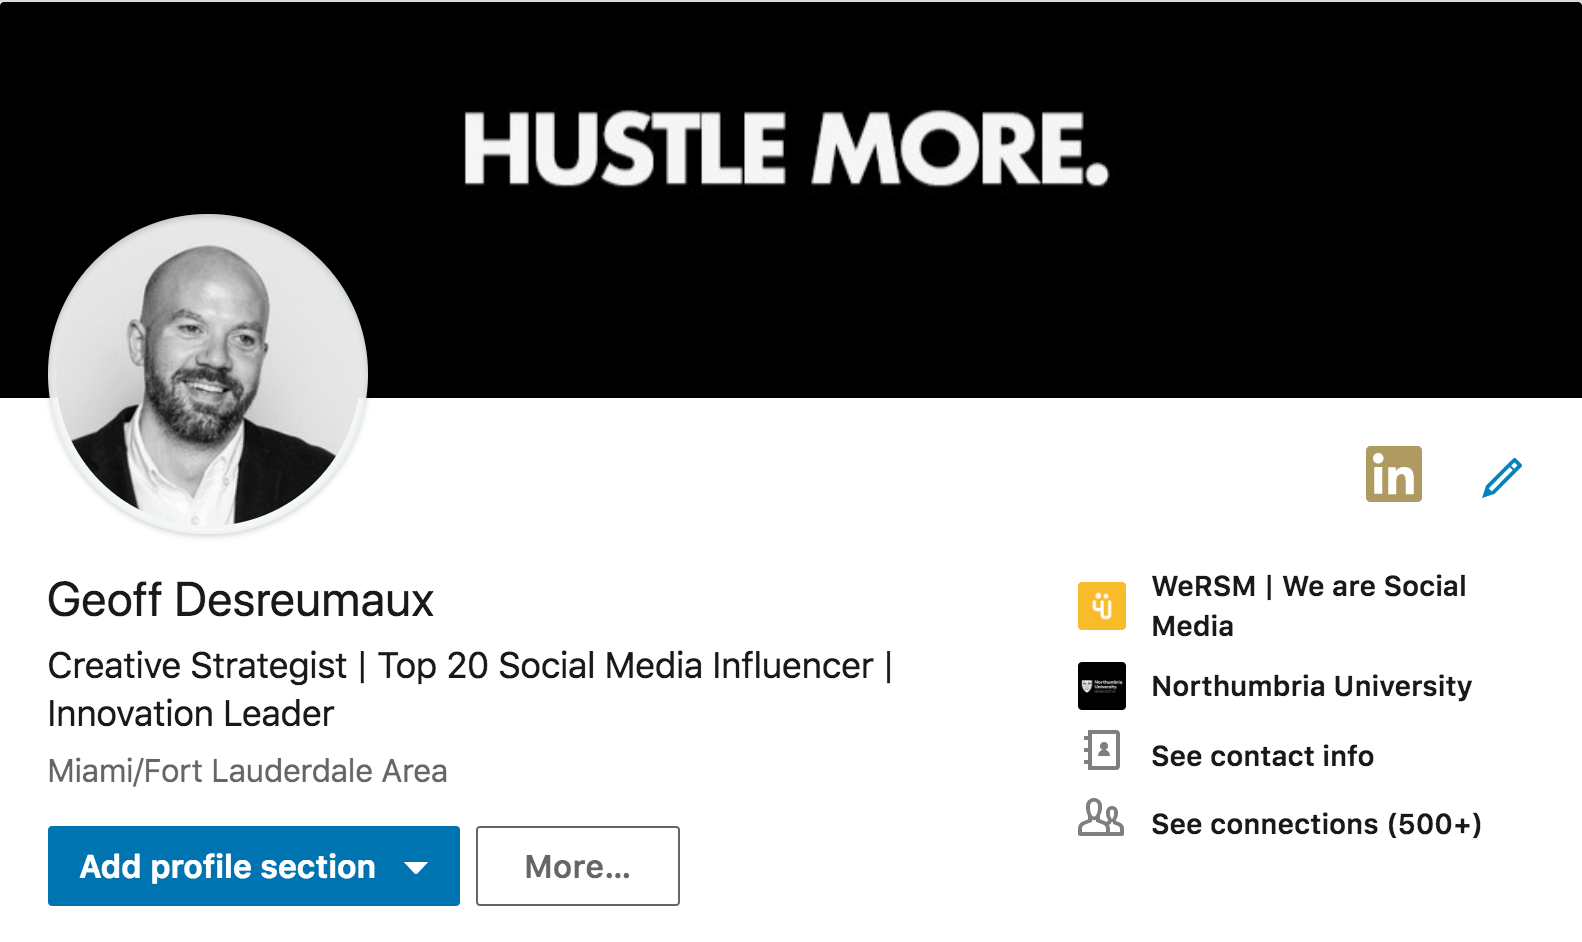 wersm-linkedin-new-profile-layout